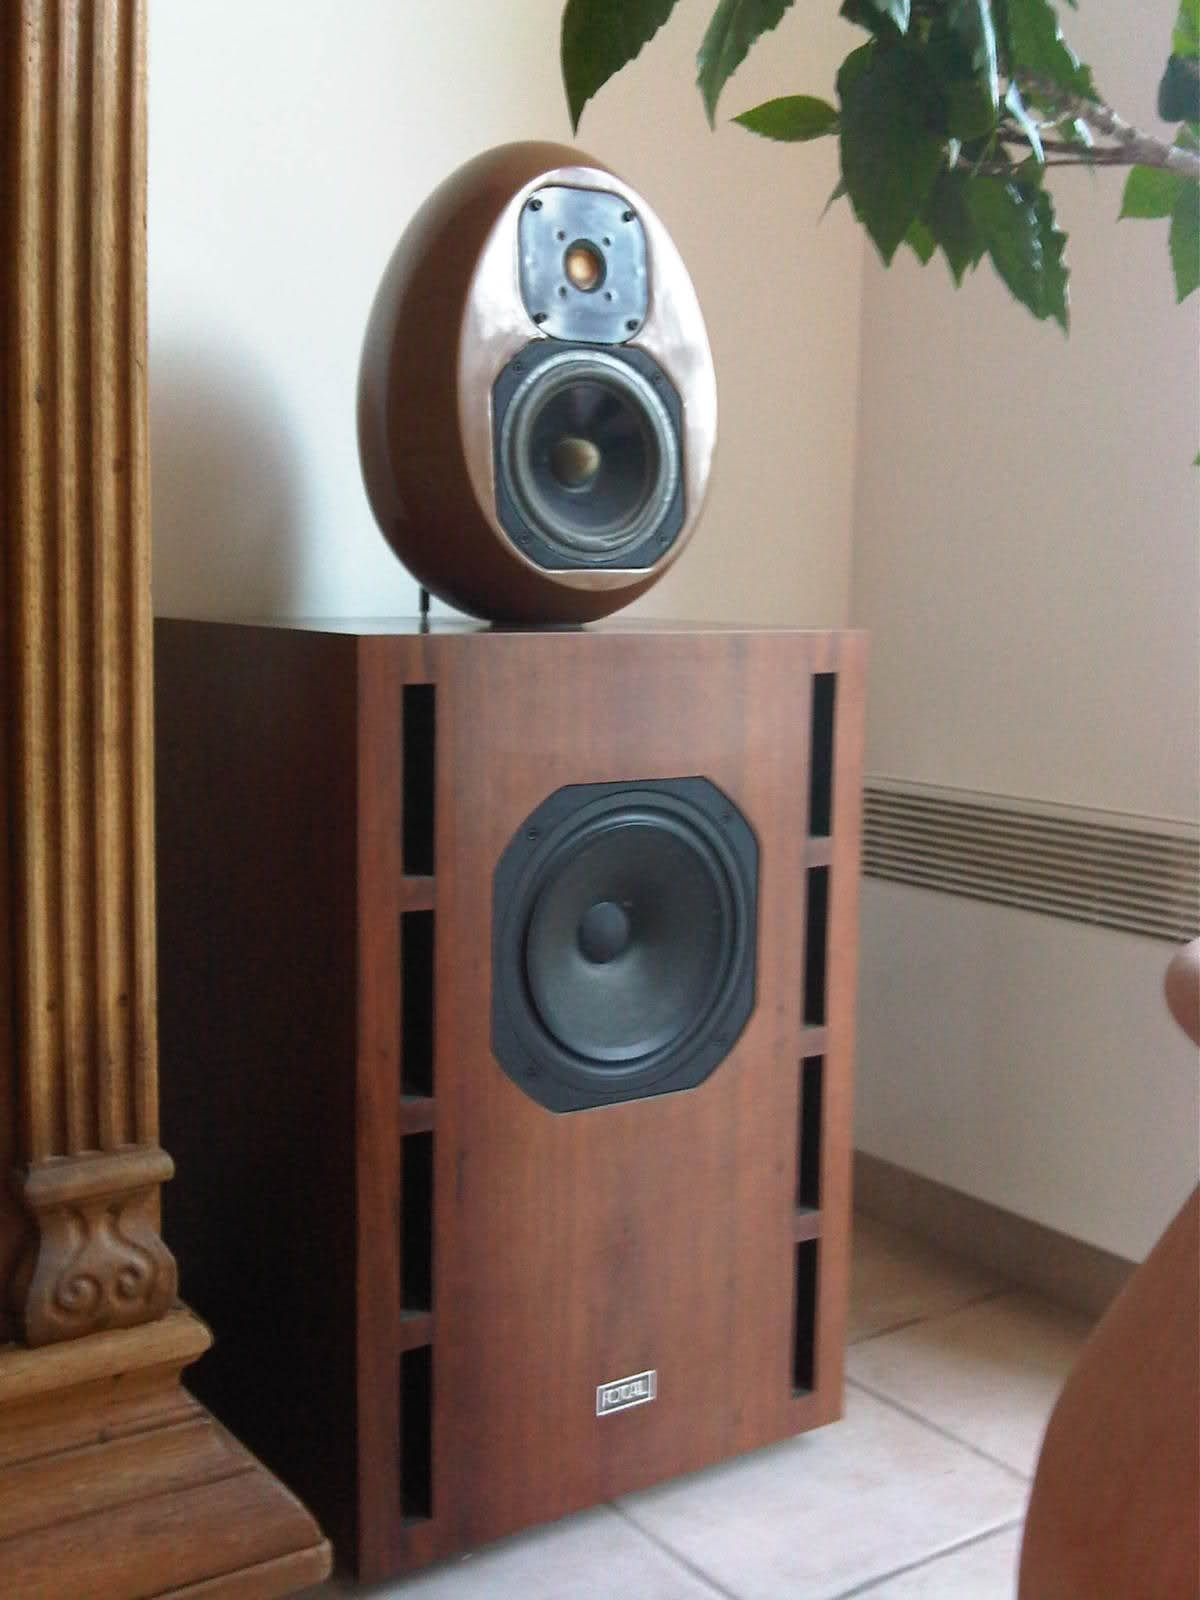 Focal Onken system. The original had the egg made of